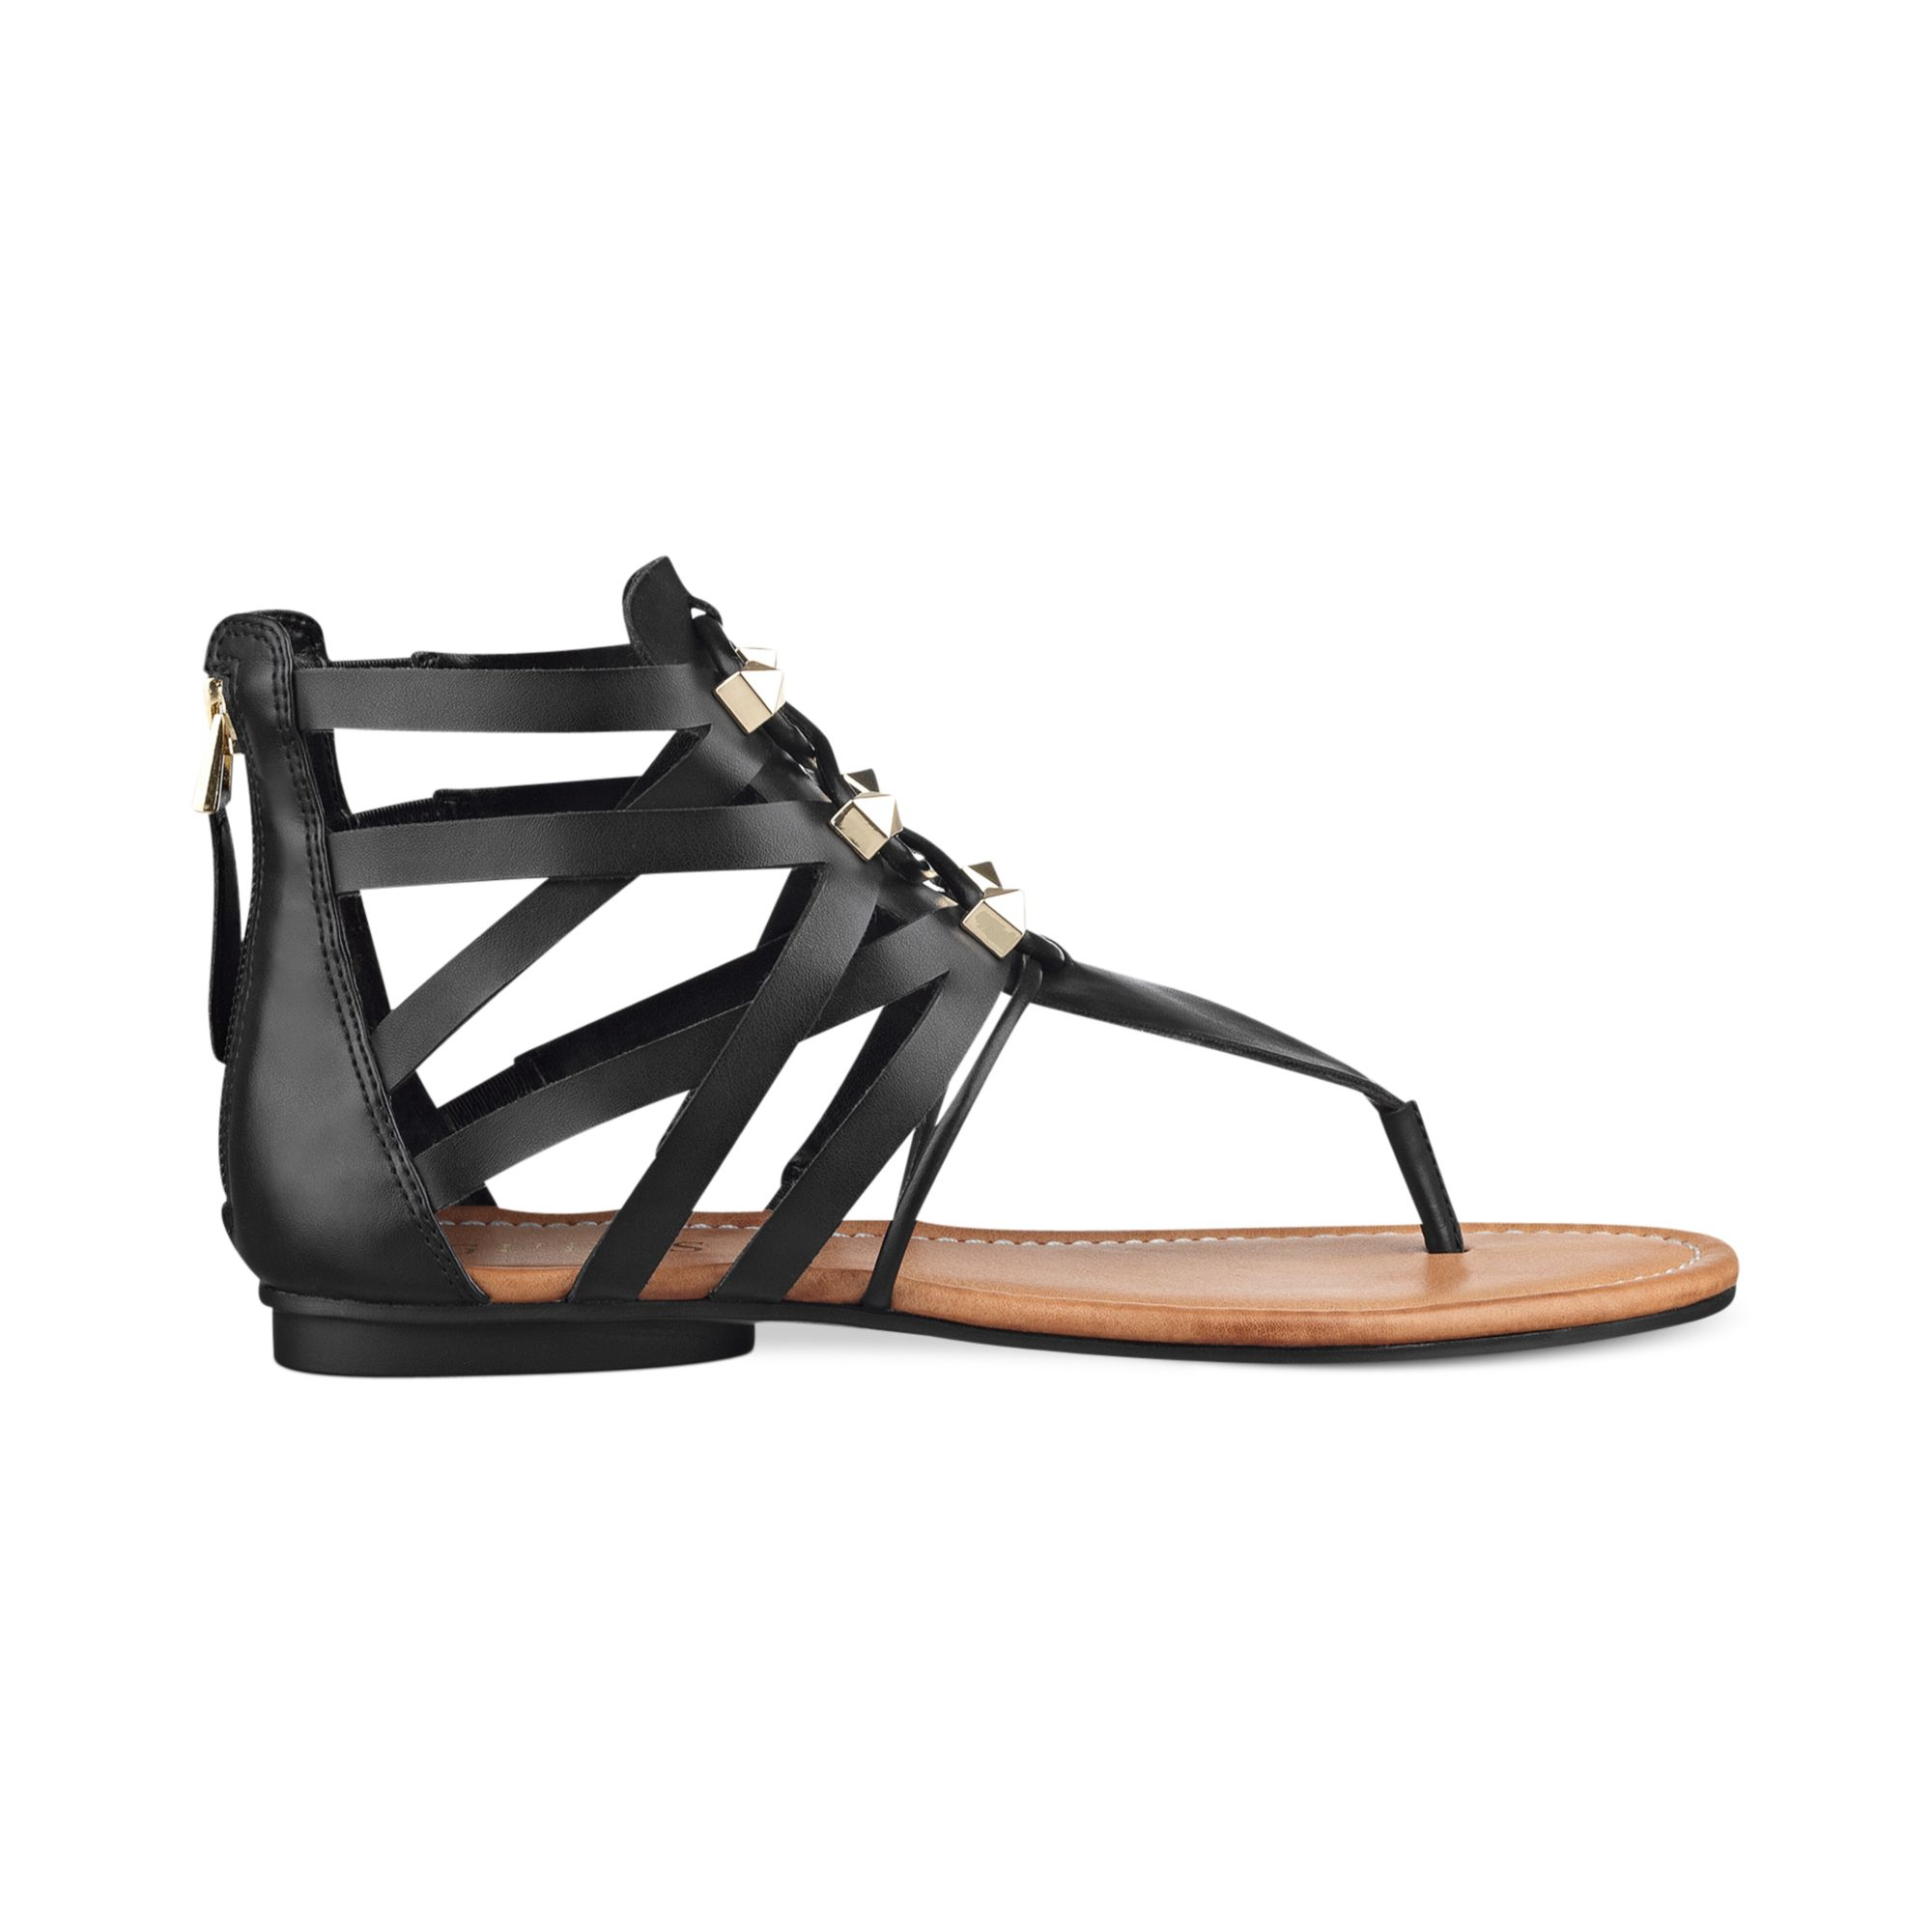 Guess Glando Gladiator Flat Thong Sandals In Black Lyst